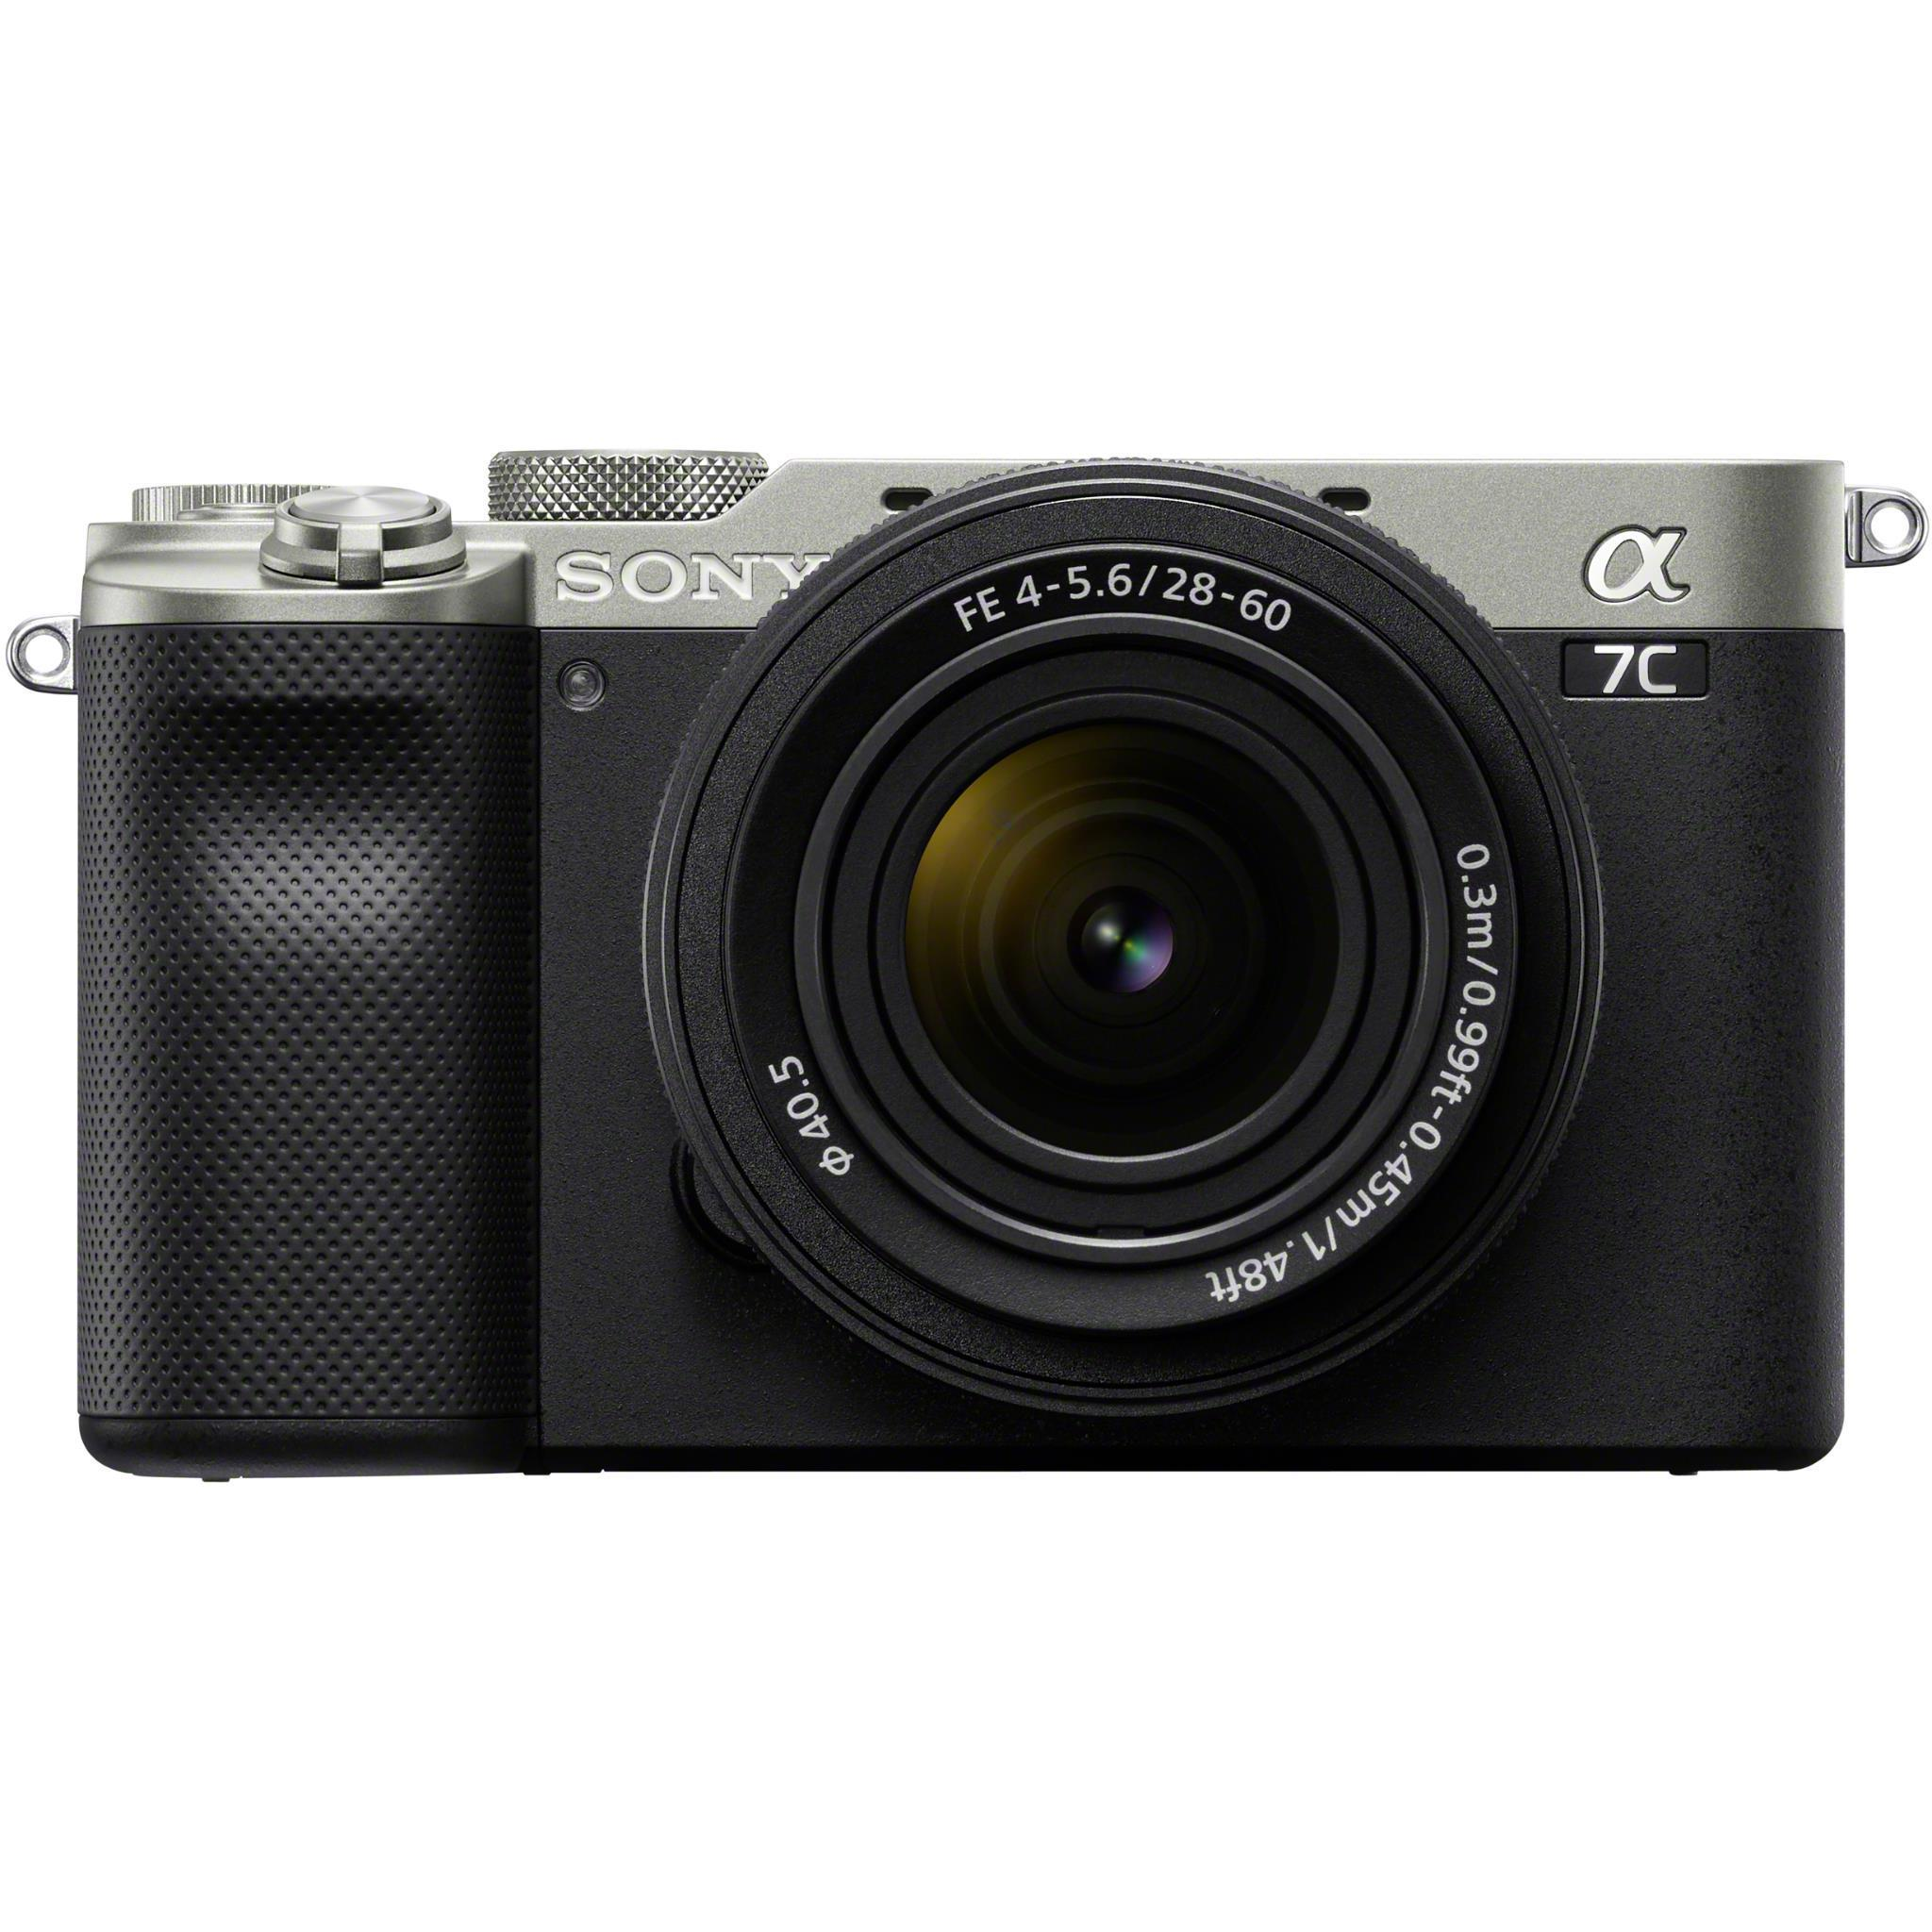 Sony Alpha a7C Full Frame Mirrorless Camera with 28-60mm Lens Kit (Silver)